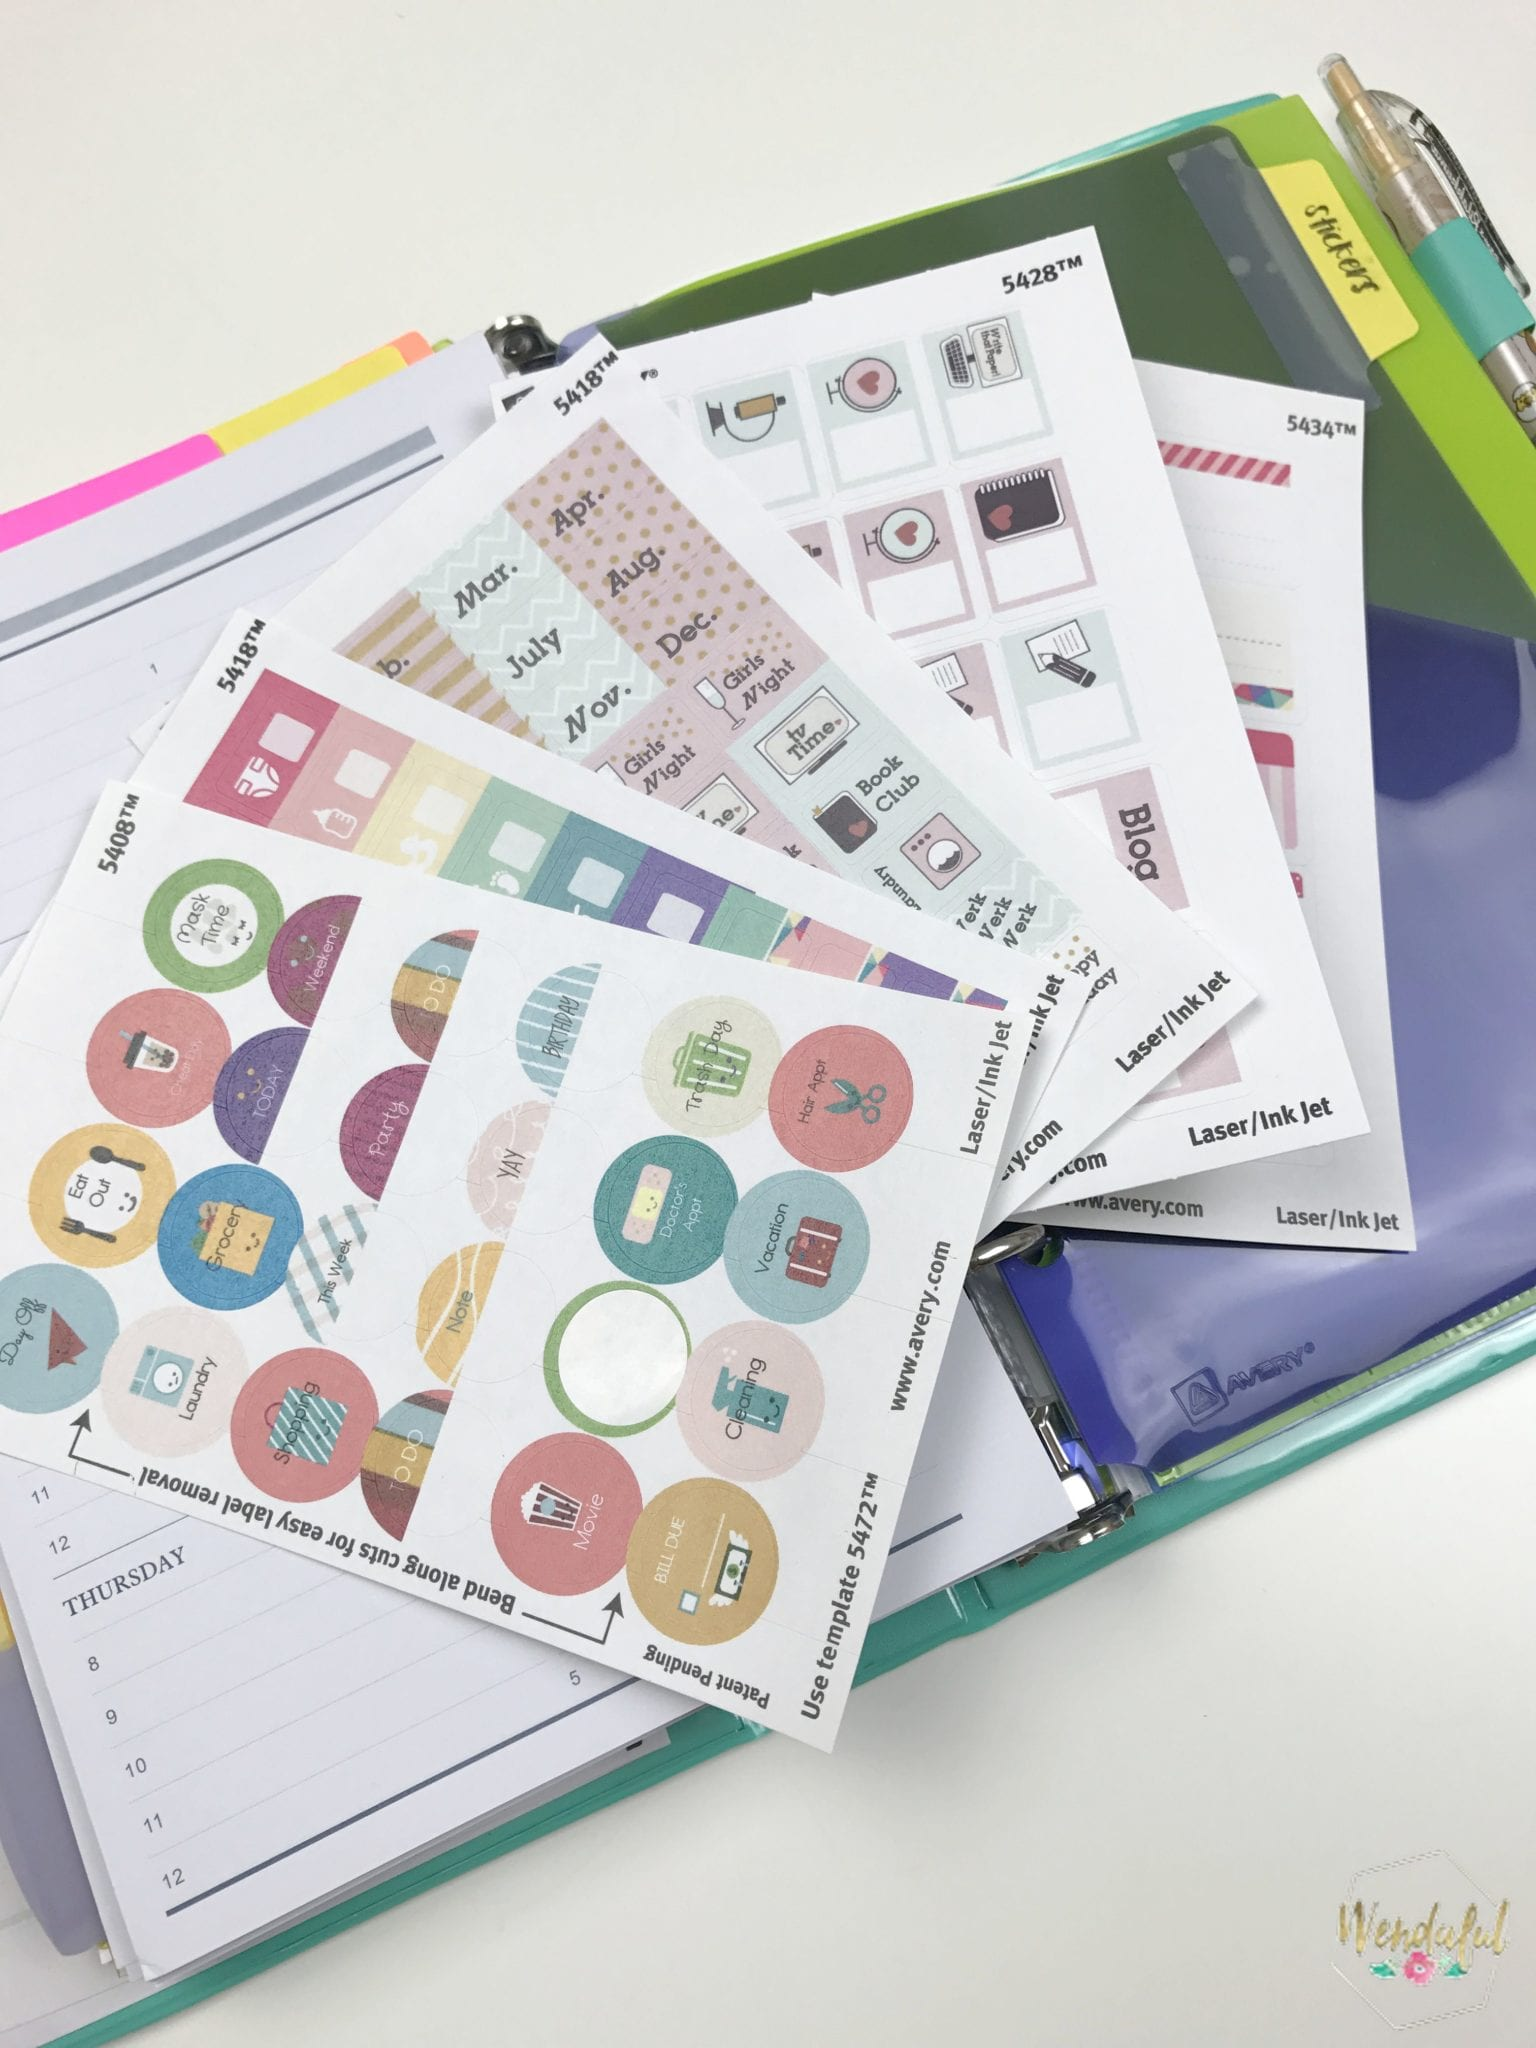 You can also check my other avery stickers posts on my blog. I designed  daily stickers, fun circle stickers & water trackers as well.